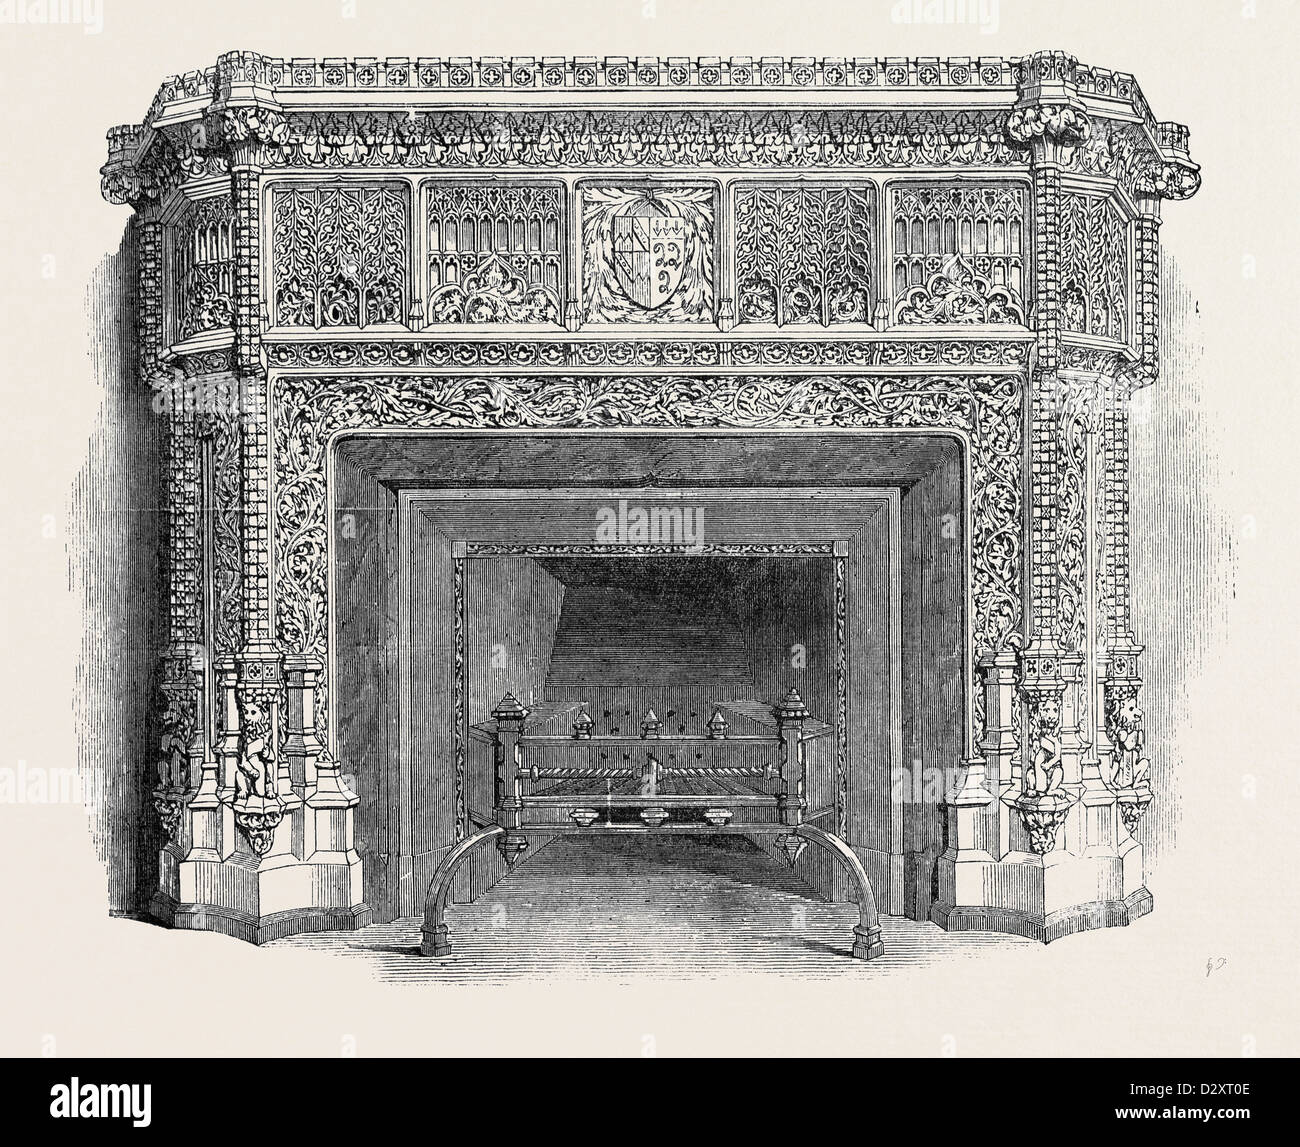 GOTHIC MANTEL PIECE, BY WYNNE AND LUMSDEN, THE GREAT EXHIBITION - Stock Image